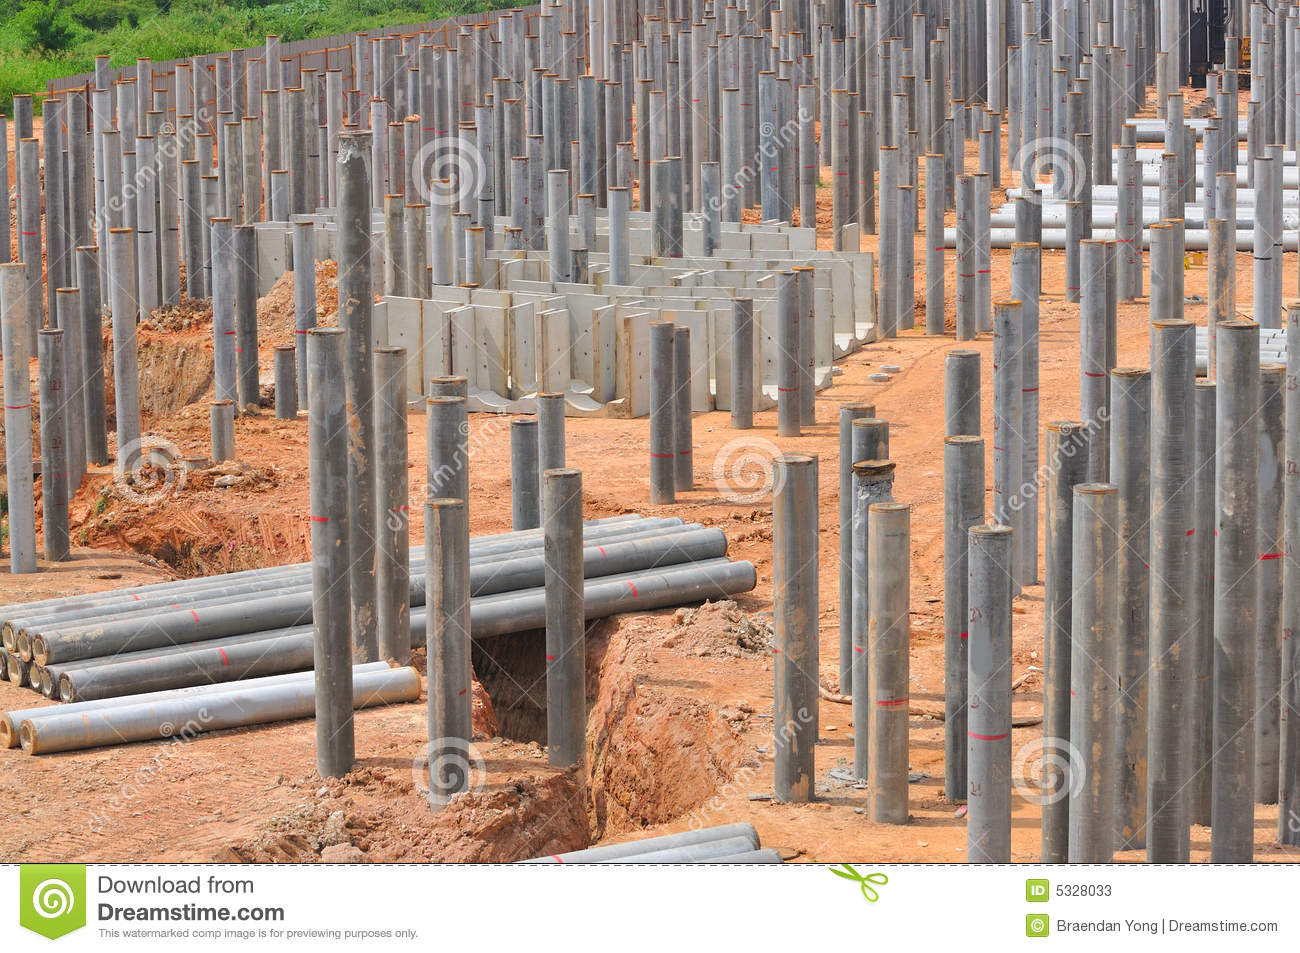 Construction piling series 6 stock photos image 5328033 for Piling for house foundations